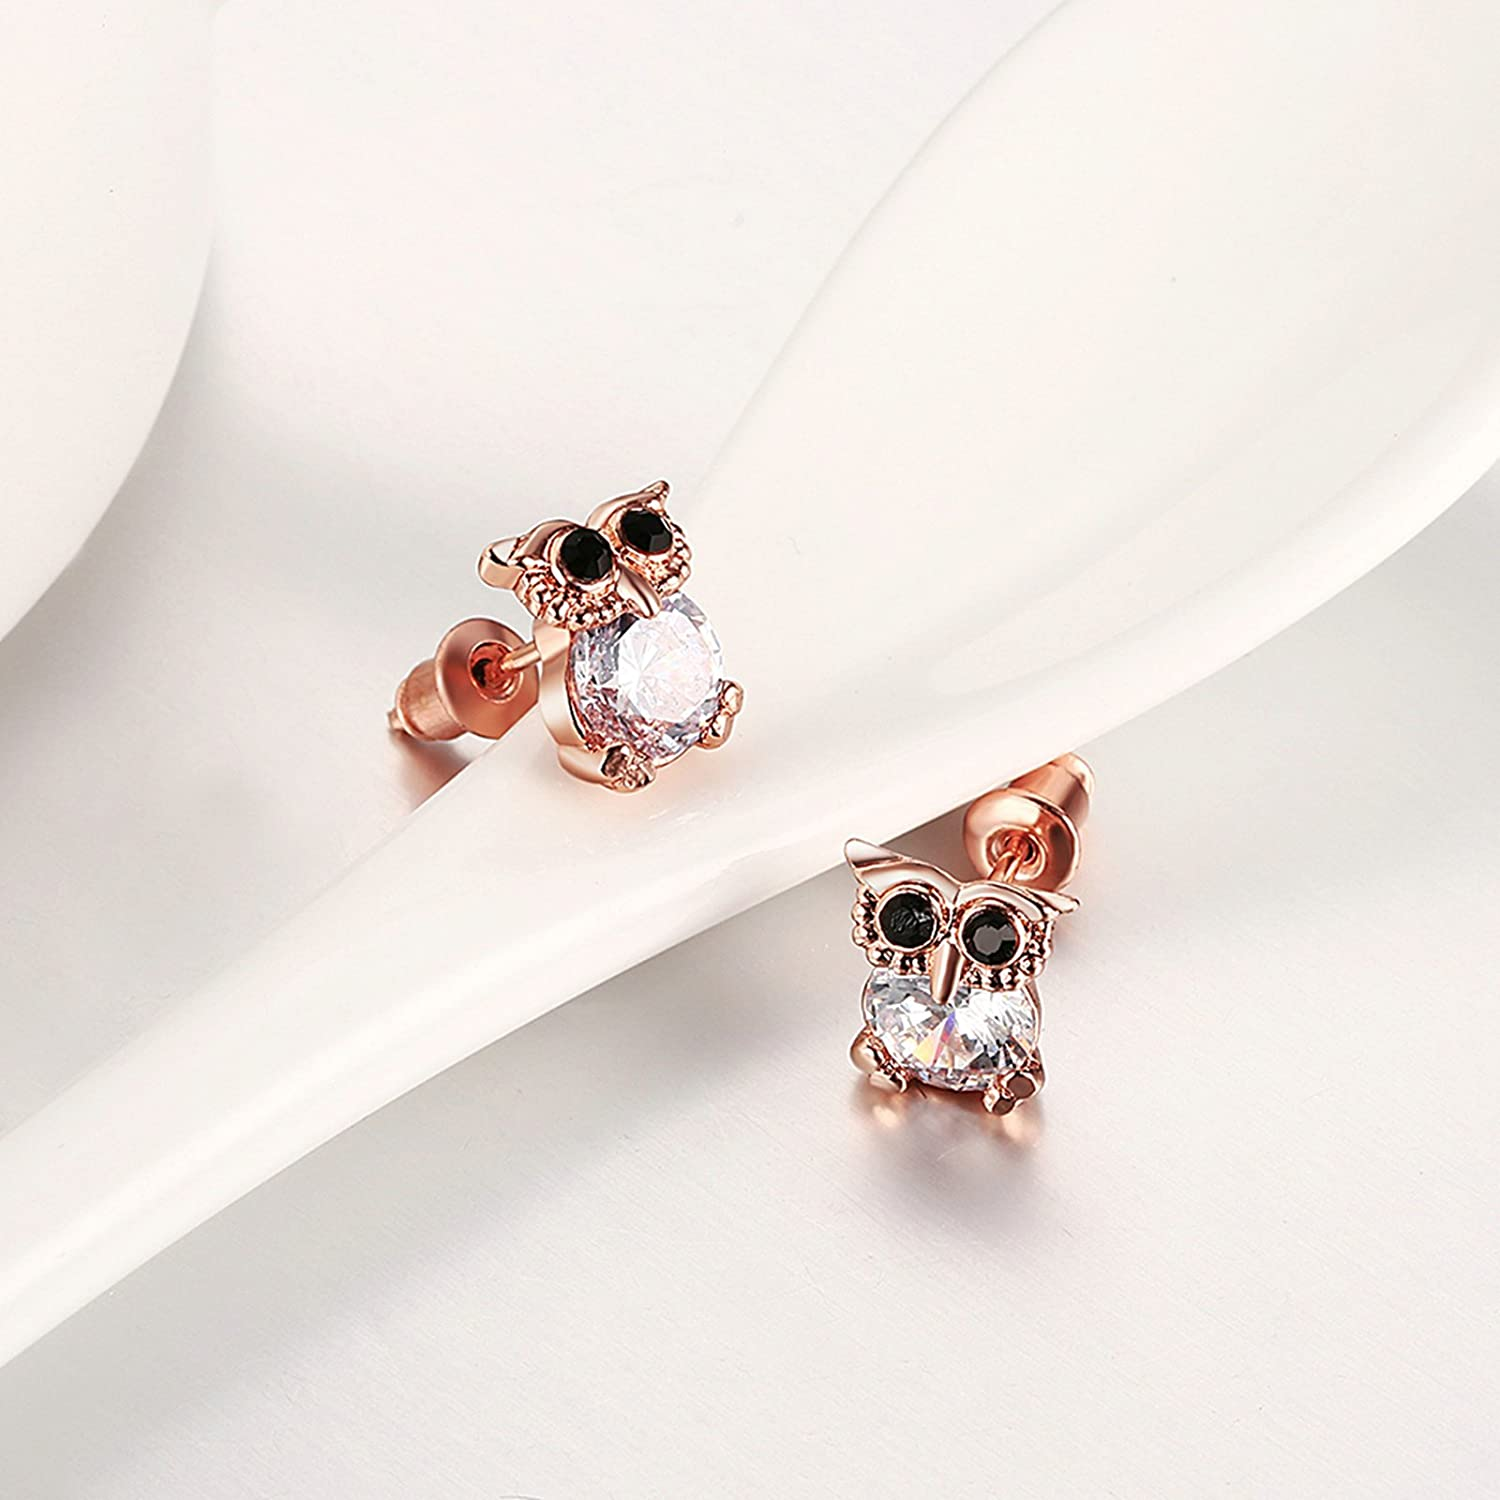 Gnzoe Fashion Jewelry 18K Rose Gold Plated Stud Earrings Women Night Owl Crystal Eco Friendly